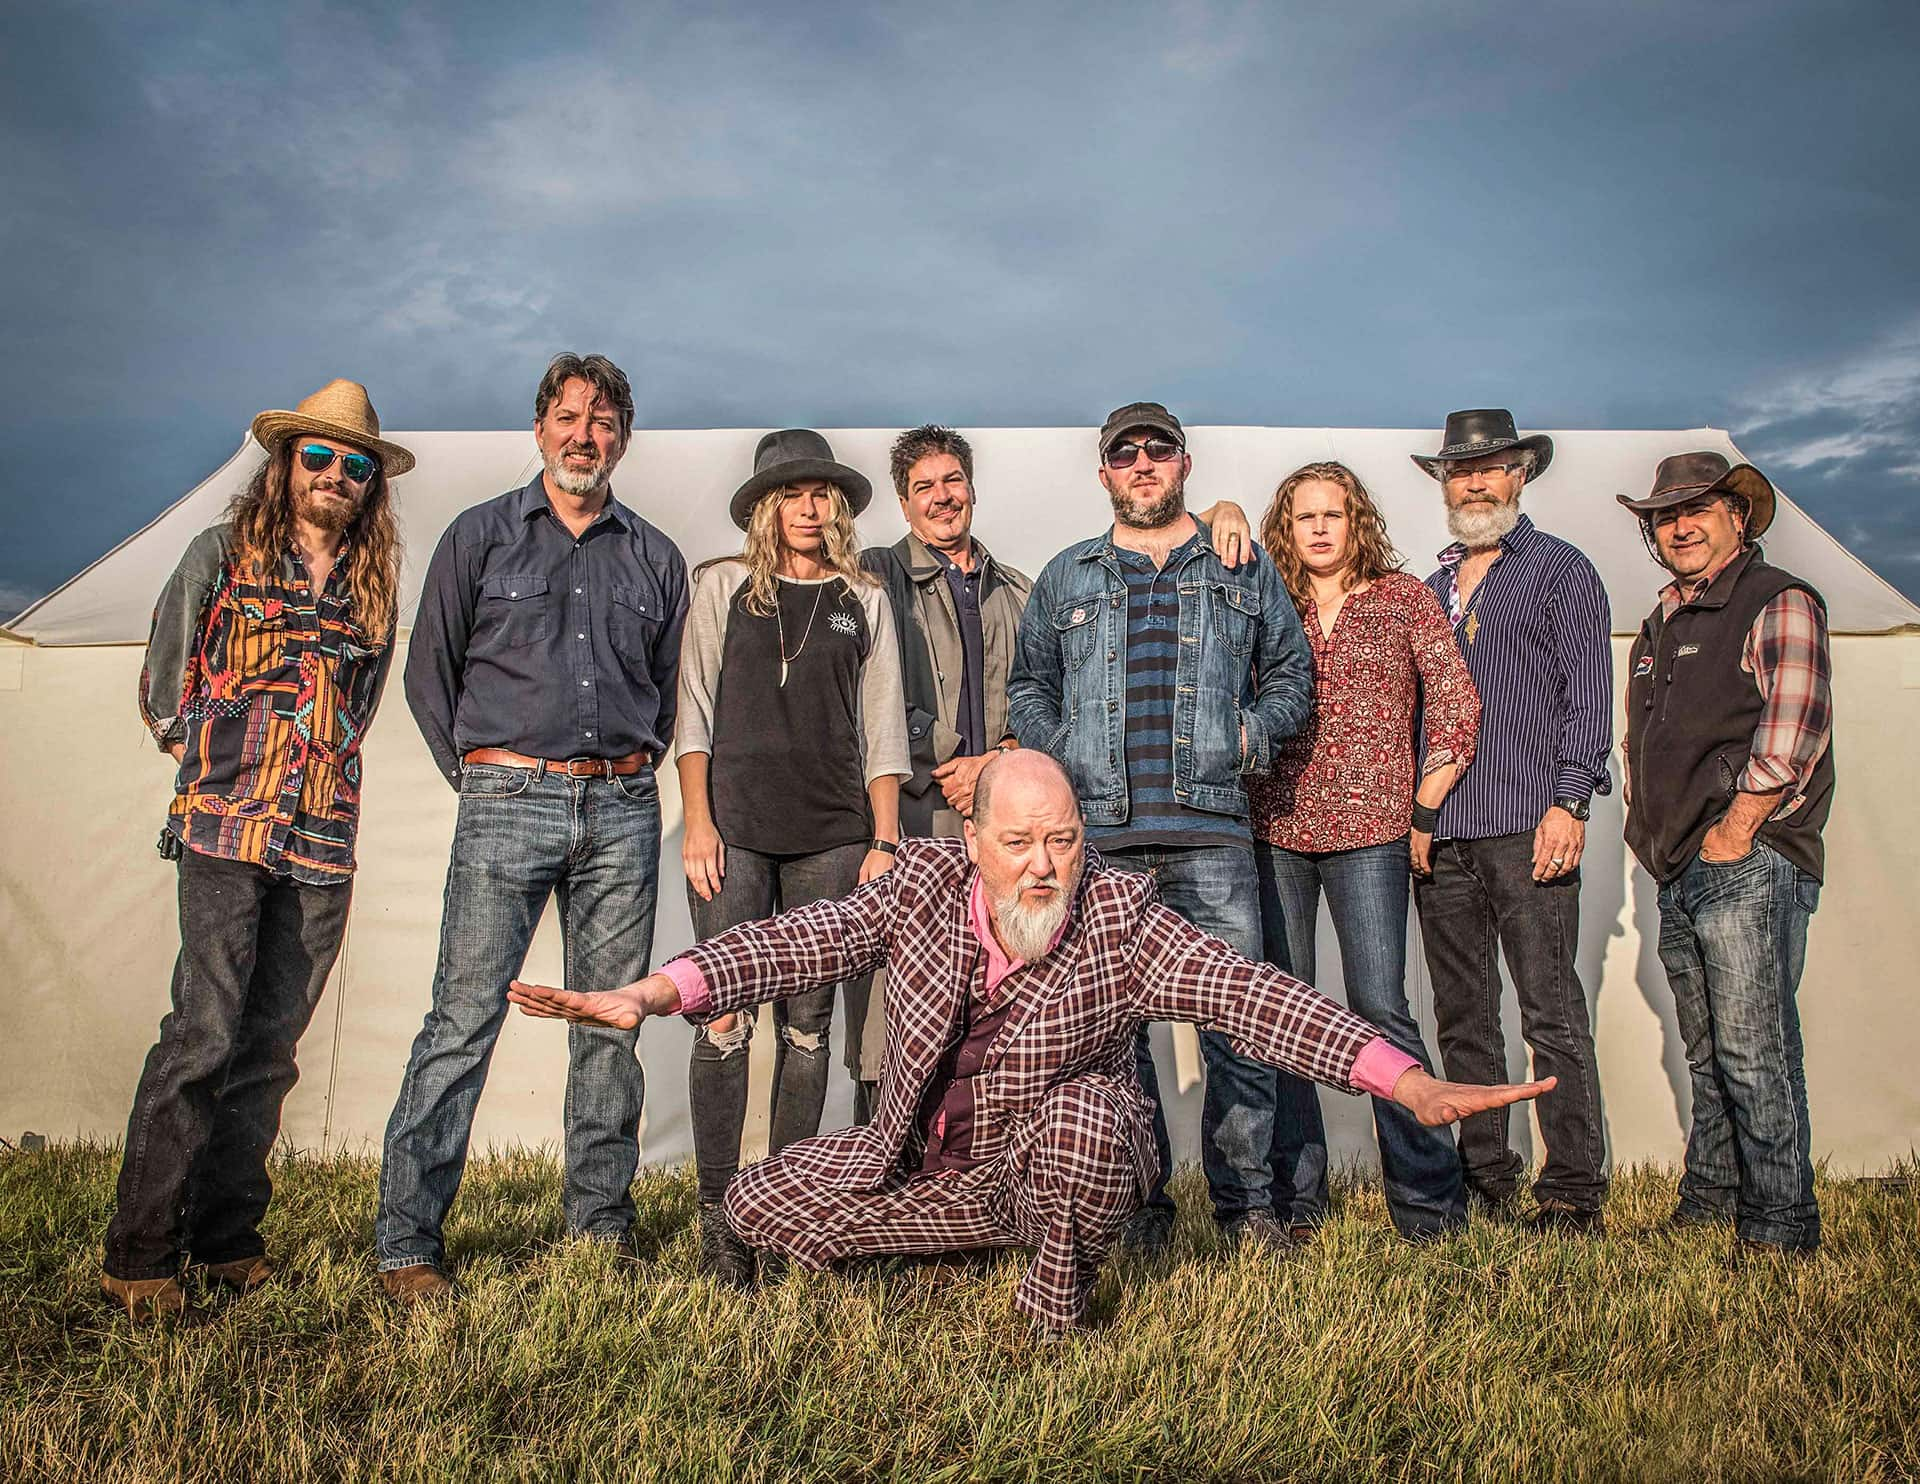 Shinyribs to bring swamp-funk to Bayou Theater, believes all dancing is good dancing